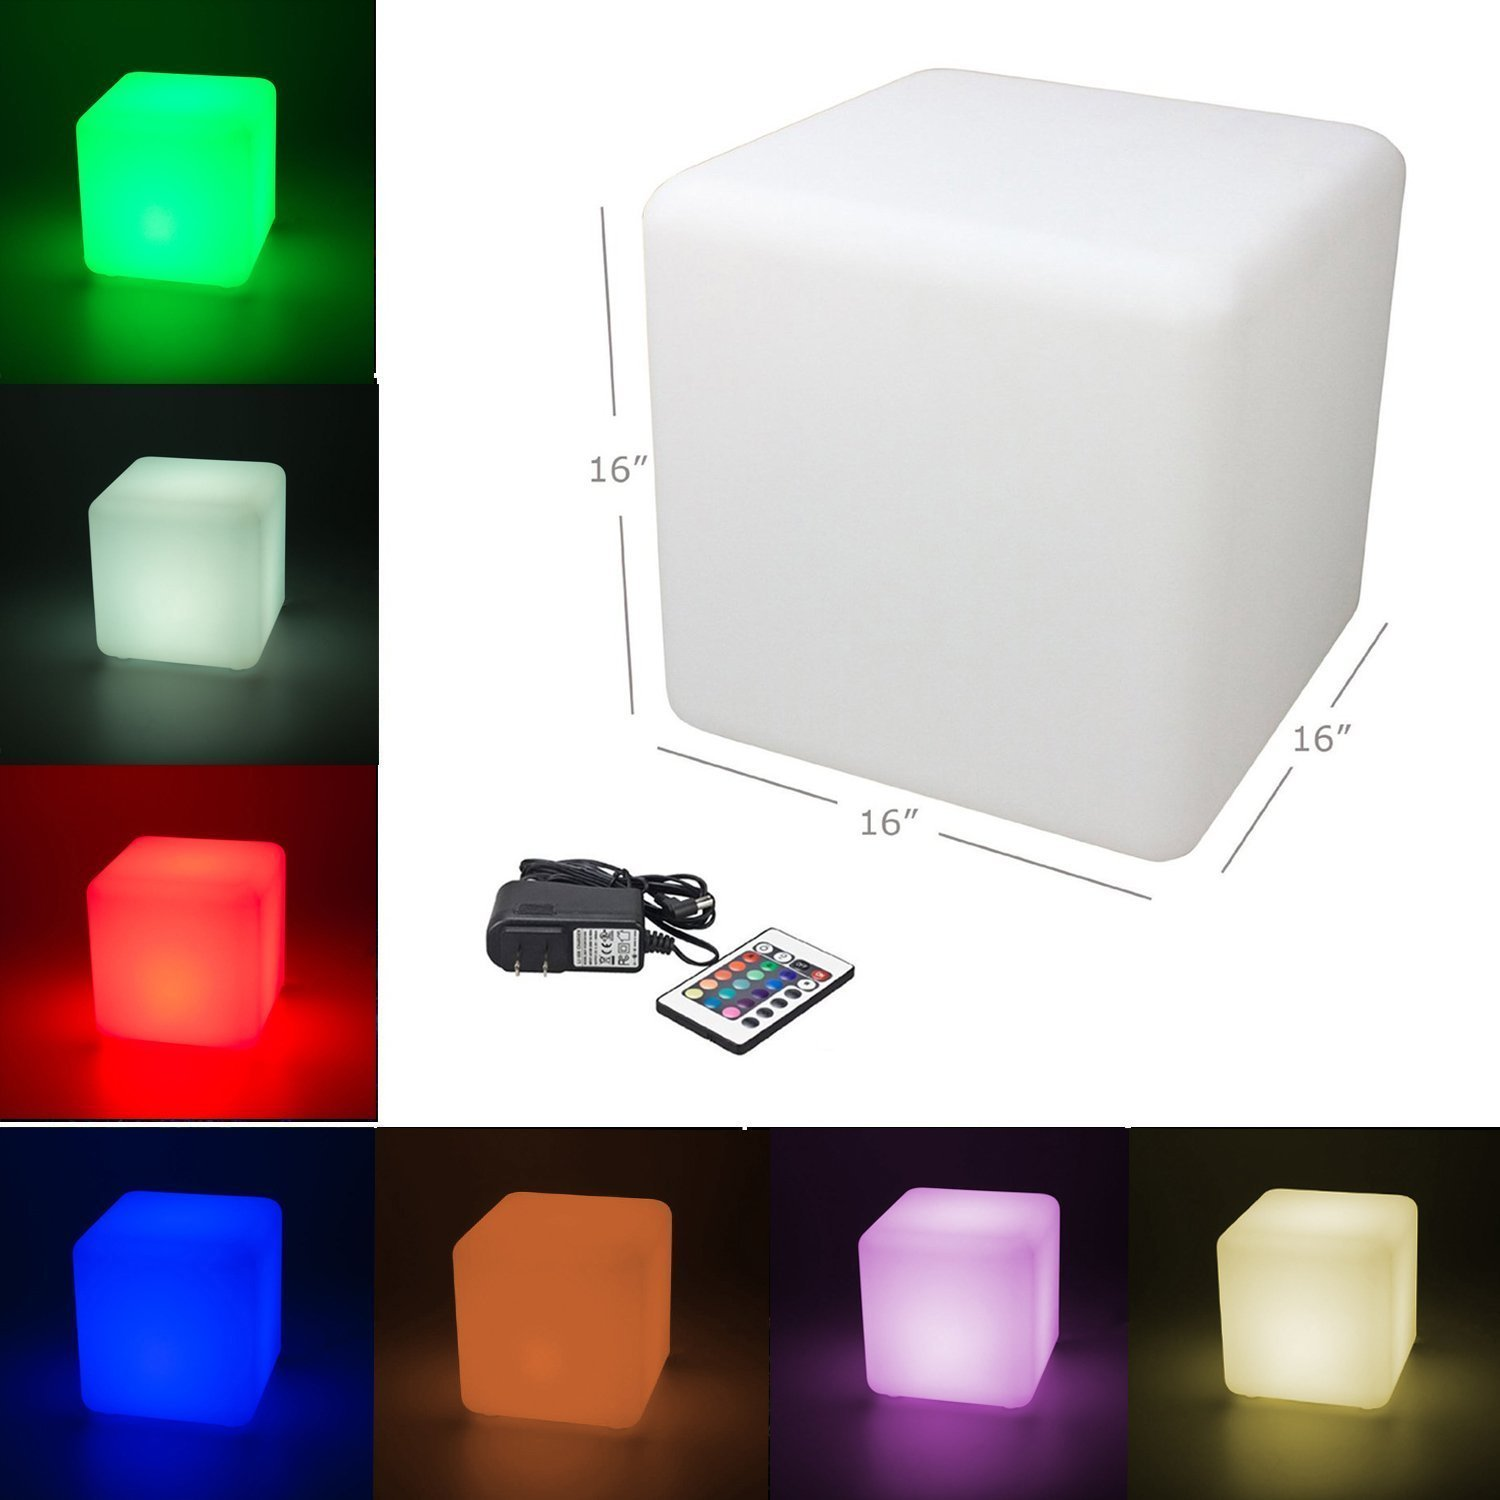 ''MODINI'' 16-inch Large Rechargeable RGB Decorative LED Lighting - Cube Stool with Remote Control Color Changing Side Table Home Bedroom Patio Pool Party Mood Lamp Night Light Romantic Light.